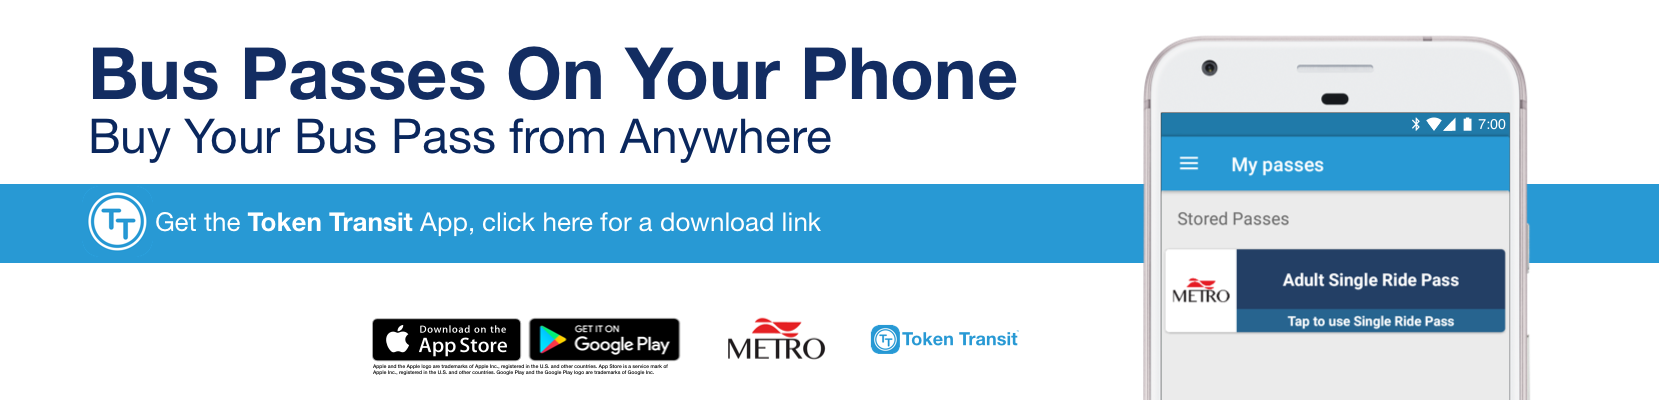 Buy your bus pass on your phone with this Token Transit app!